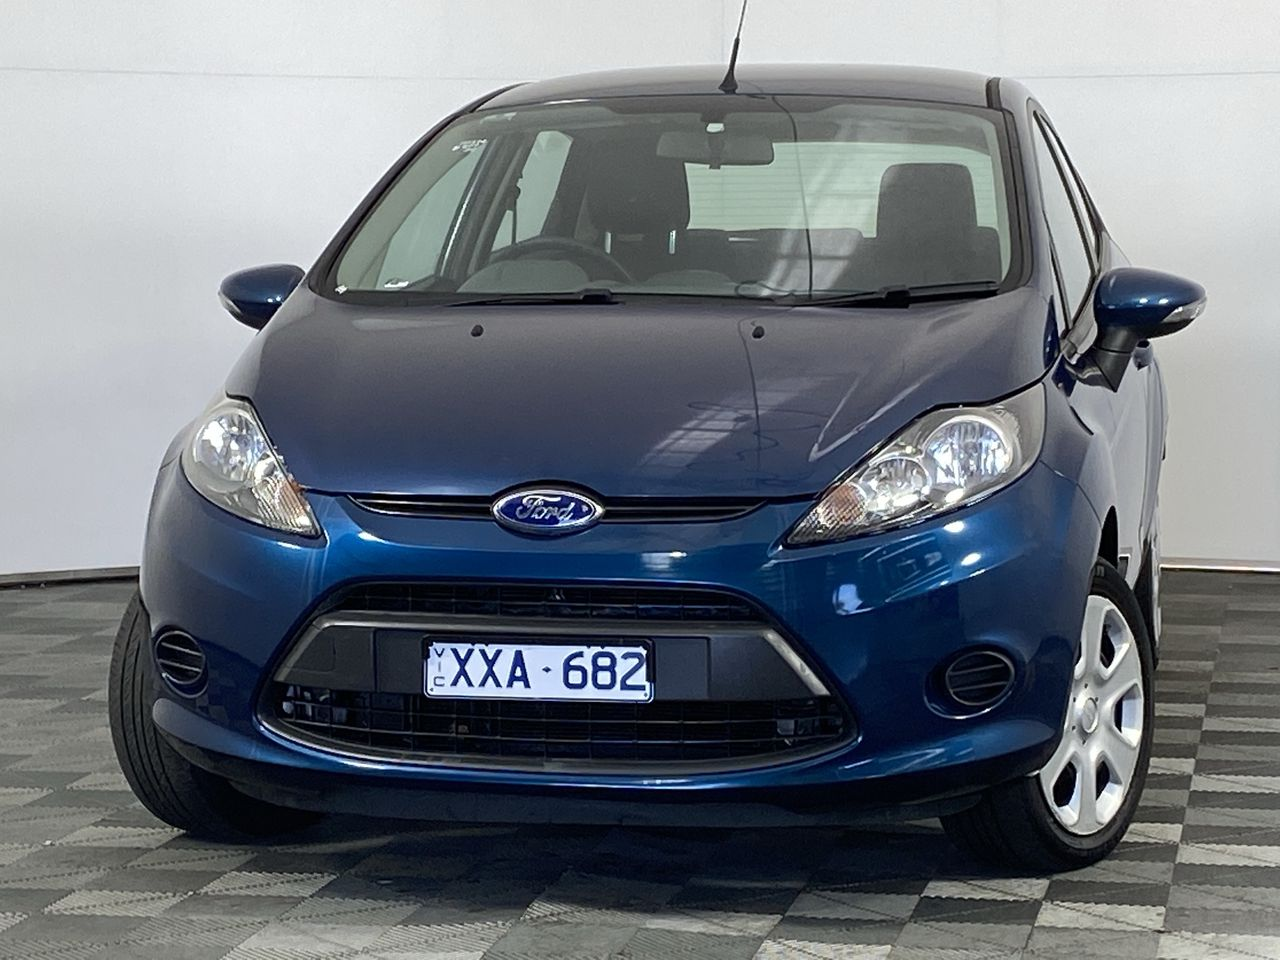 2010 Ford Fiesta CL WT Automatic Hatchback